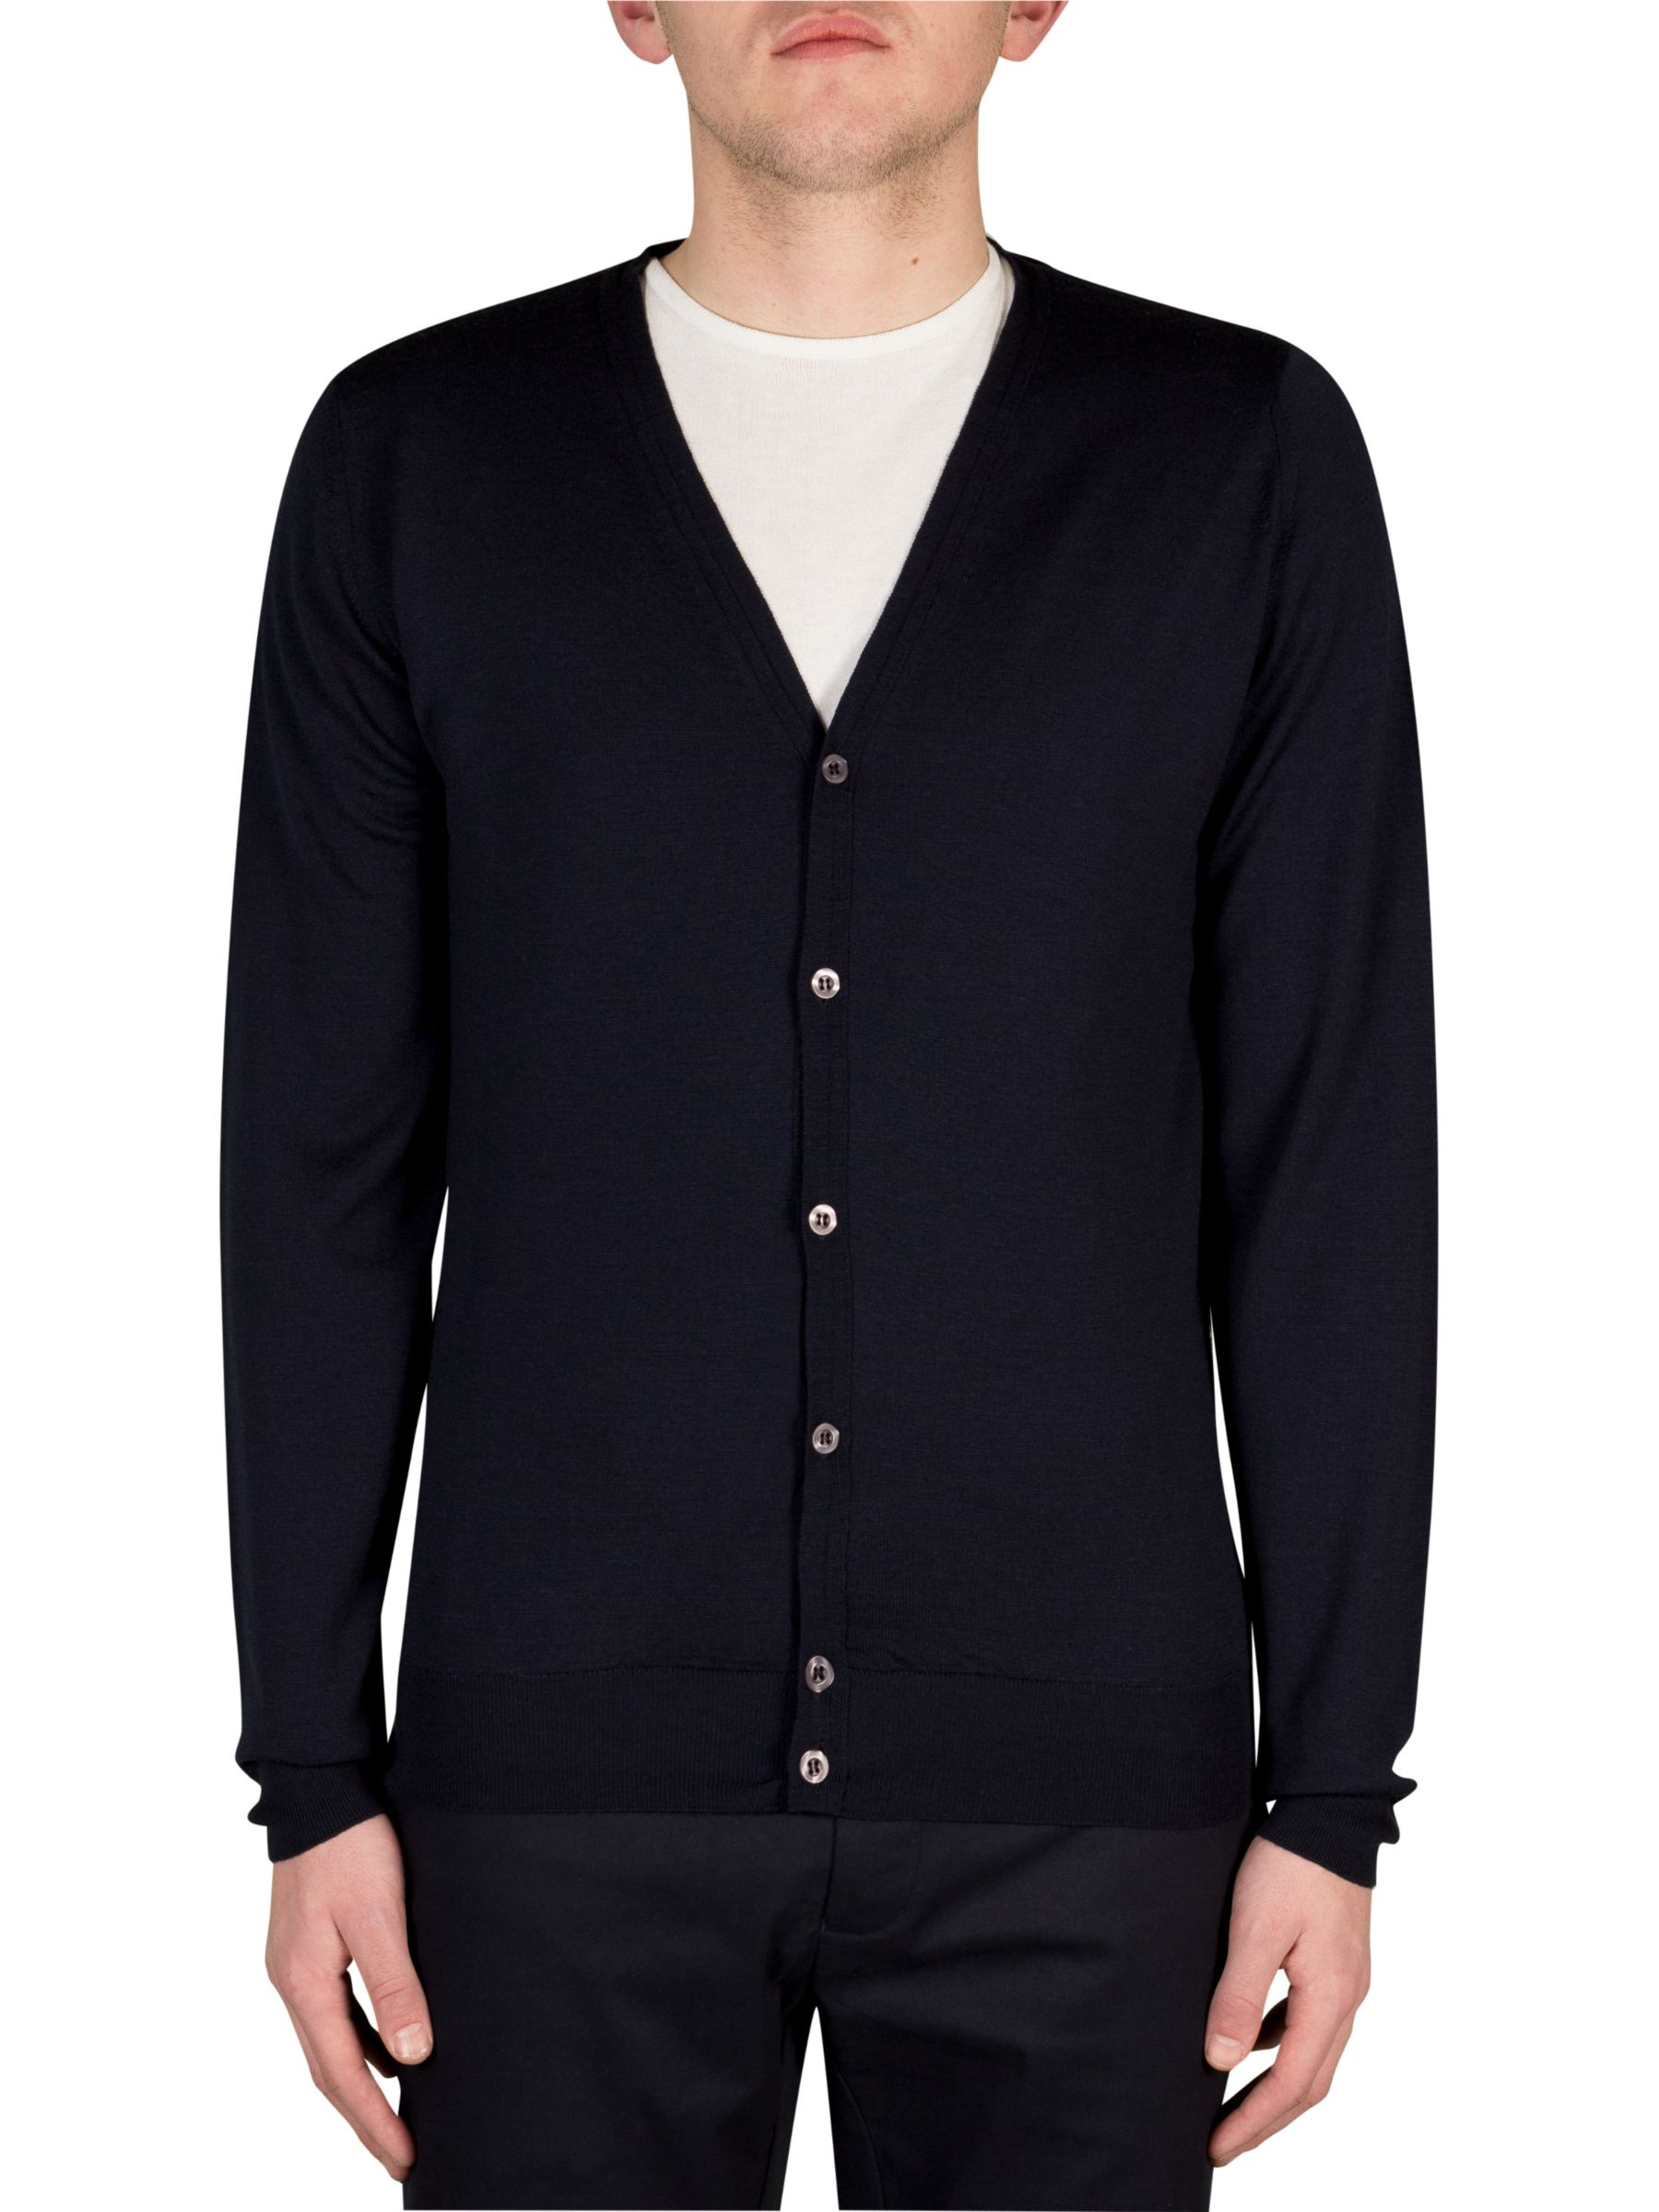 John Smedley John Smedley Petworth Merino Cardigan, Midnight